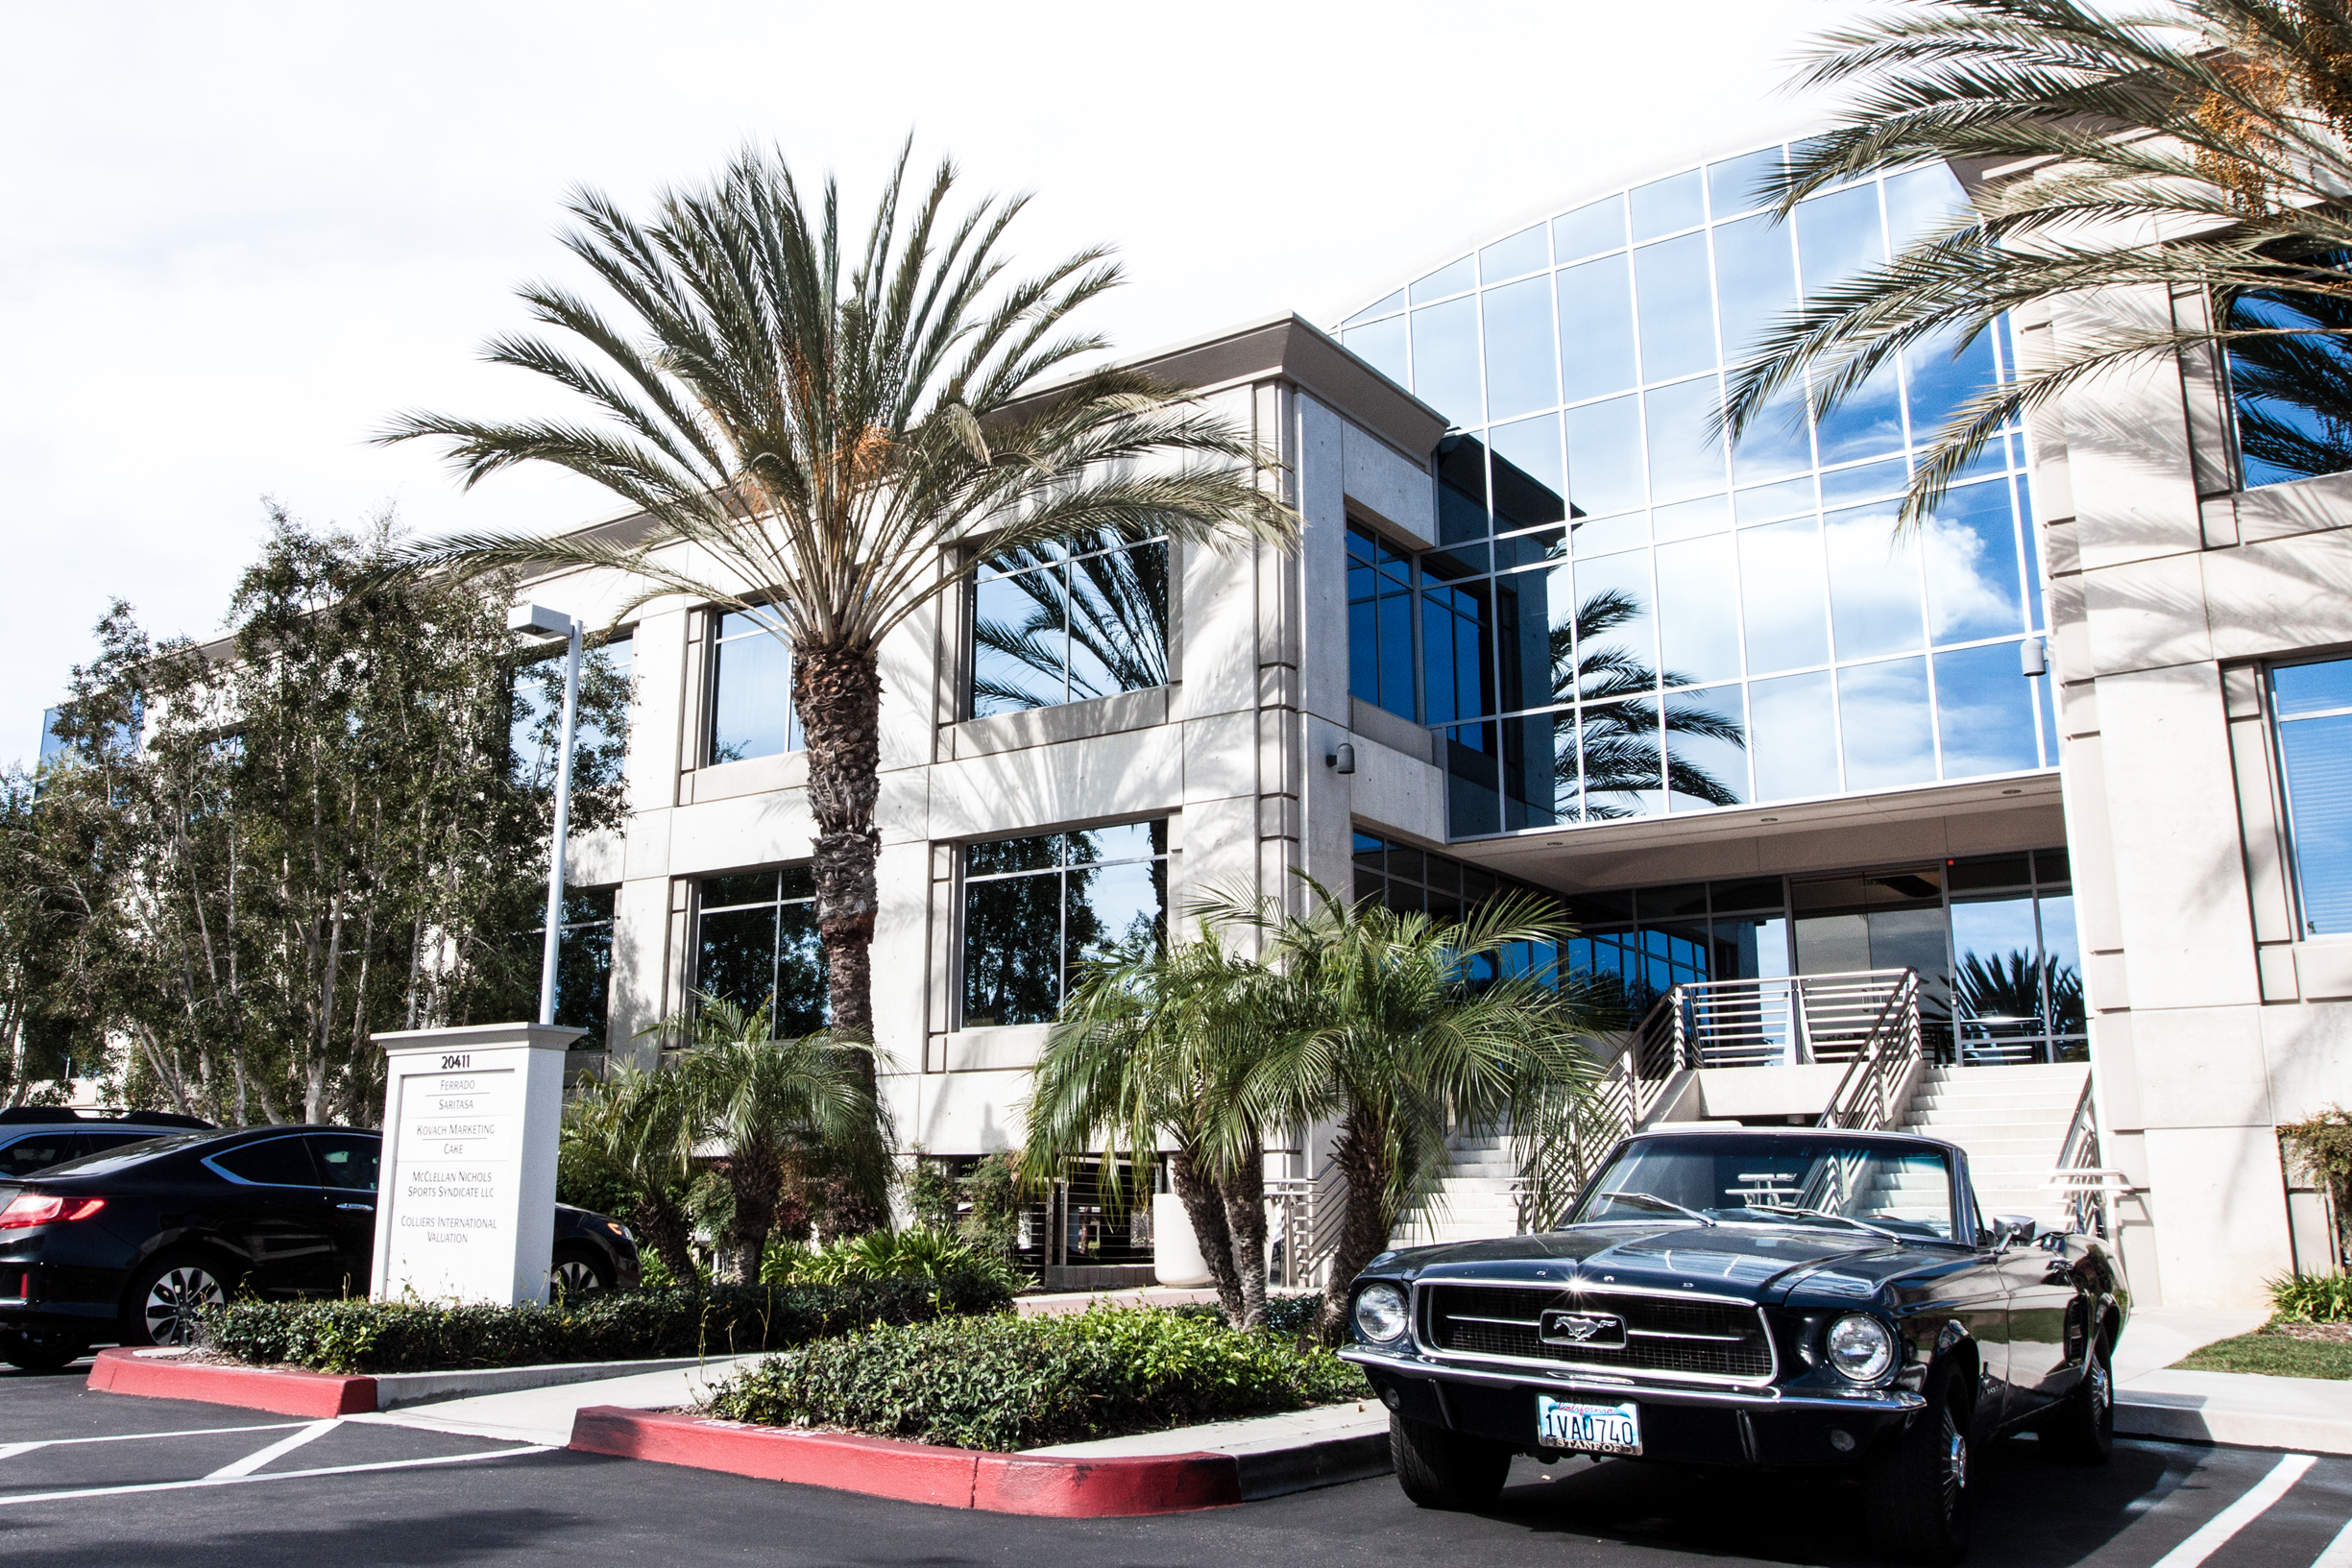 Newport Office parking exterior landscaping with Mustang car